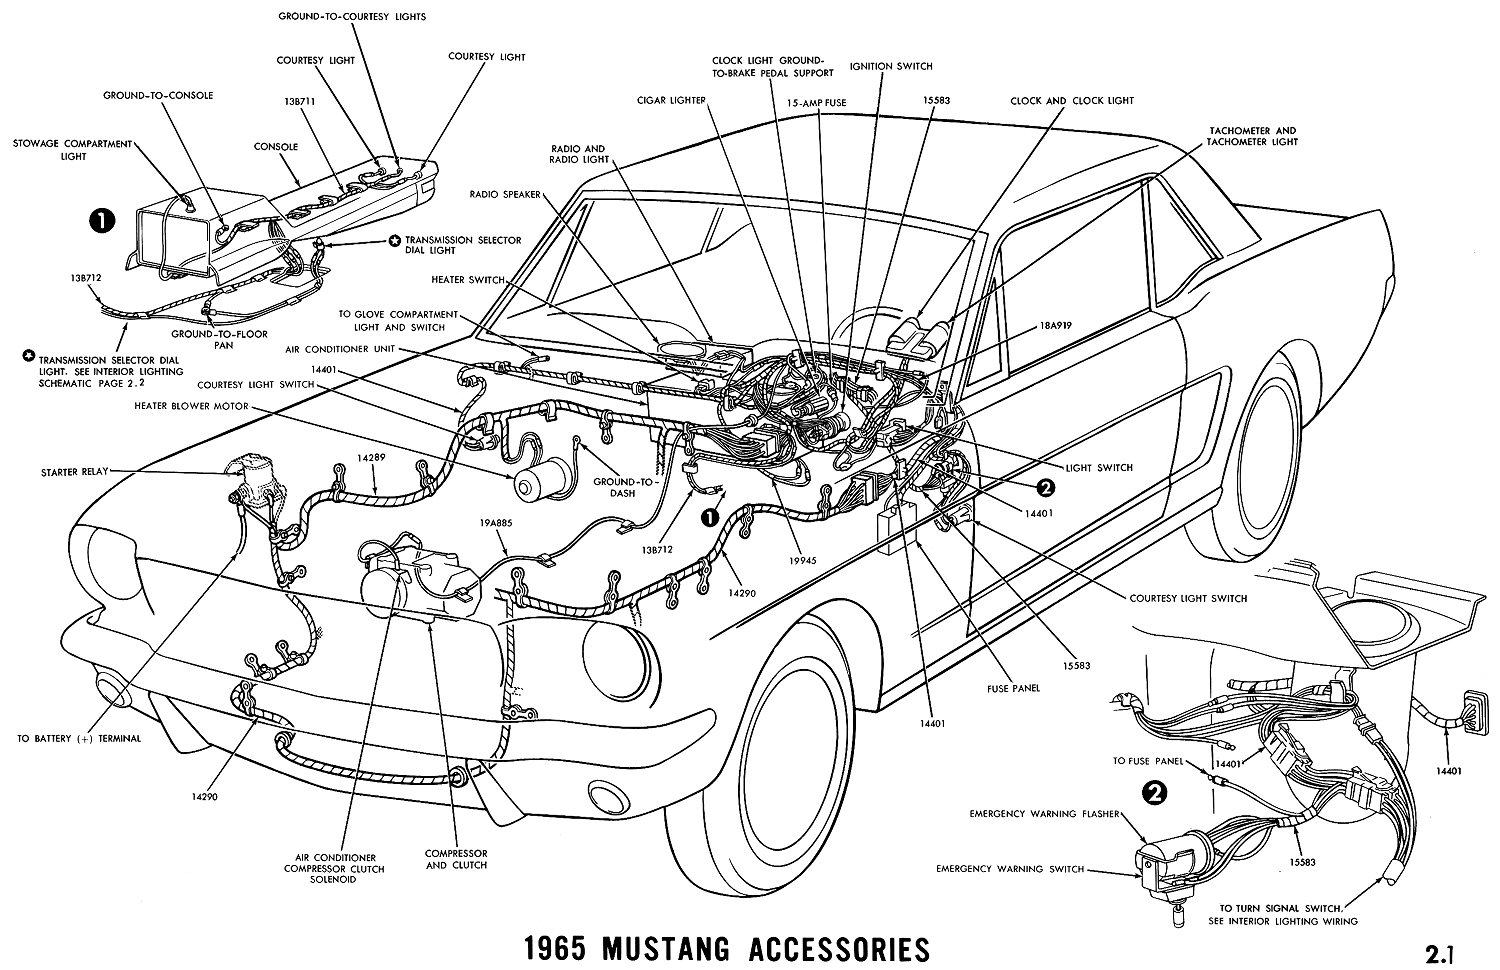 1965h 1965 mustang wiring diagrams average joe restoration 68 Mustang Wiring Diagram at webbmarketing.co